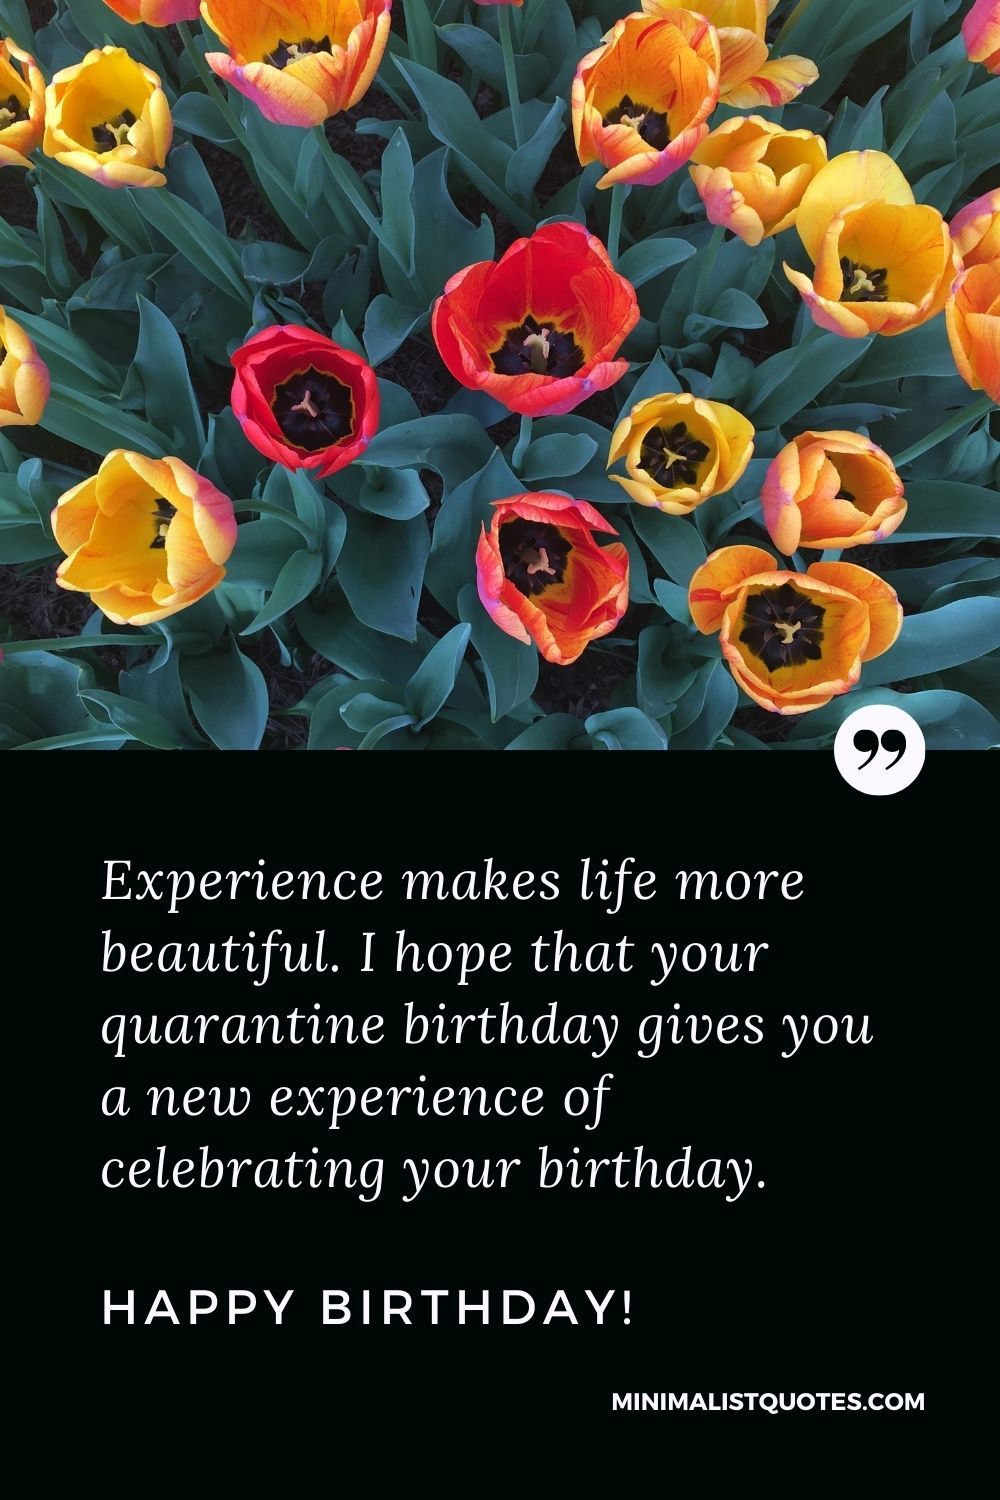 Quarantine Birthday Quote, Wish & Message With Image: Experience makes life more beautiful. I hope that your quarantine birthday gives you a new experience of celebrating your birthday. Happy Birthday!